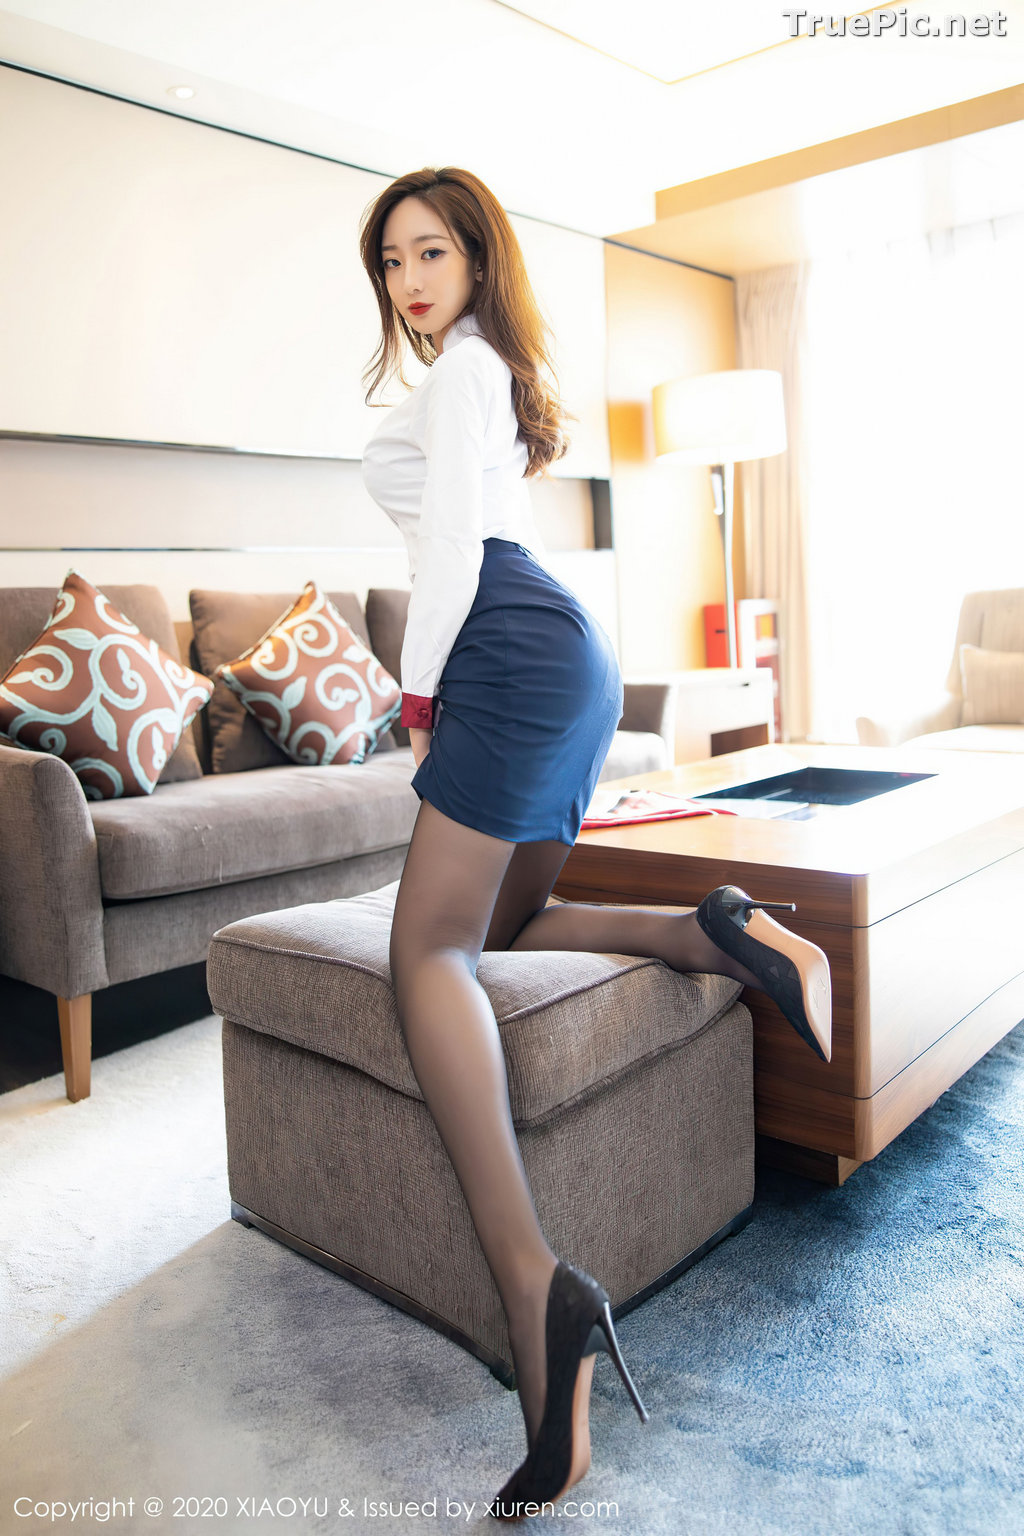 Image XiaoYu Vol.370 - Chinese Model - 安琪Yee - Affter Working Day - TruePic.net - Picture-8